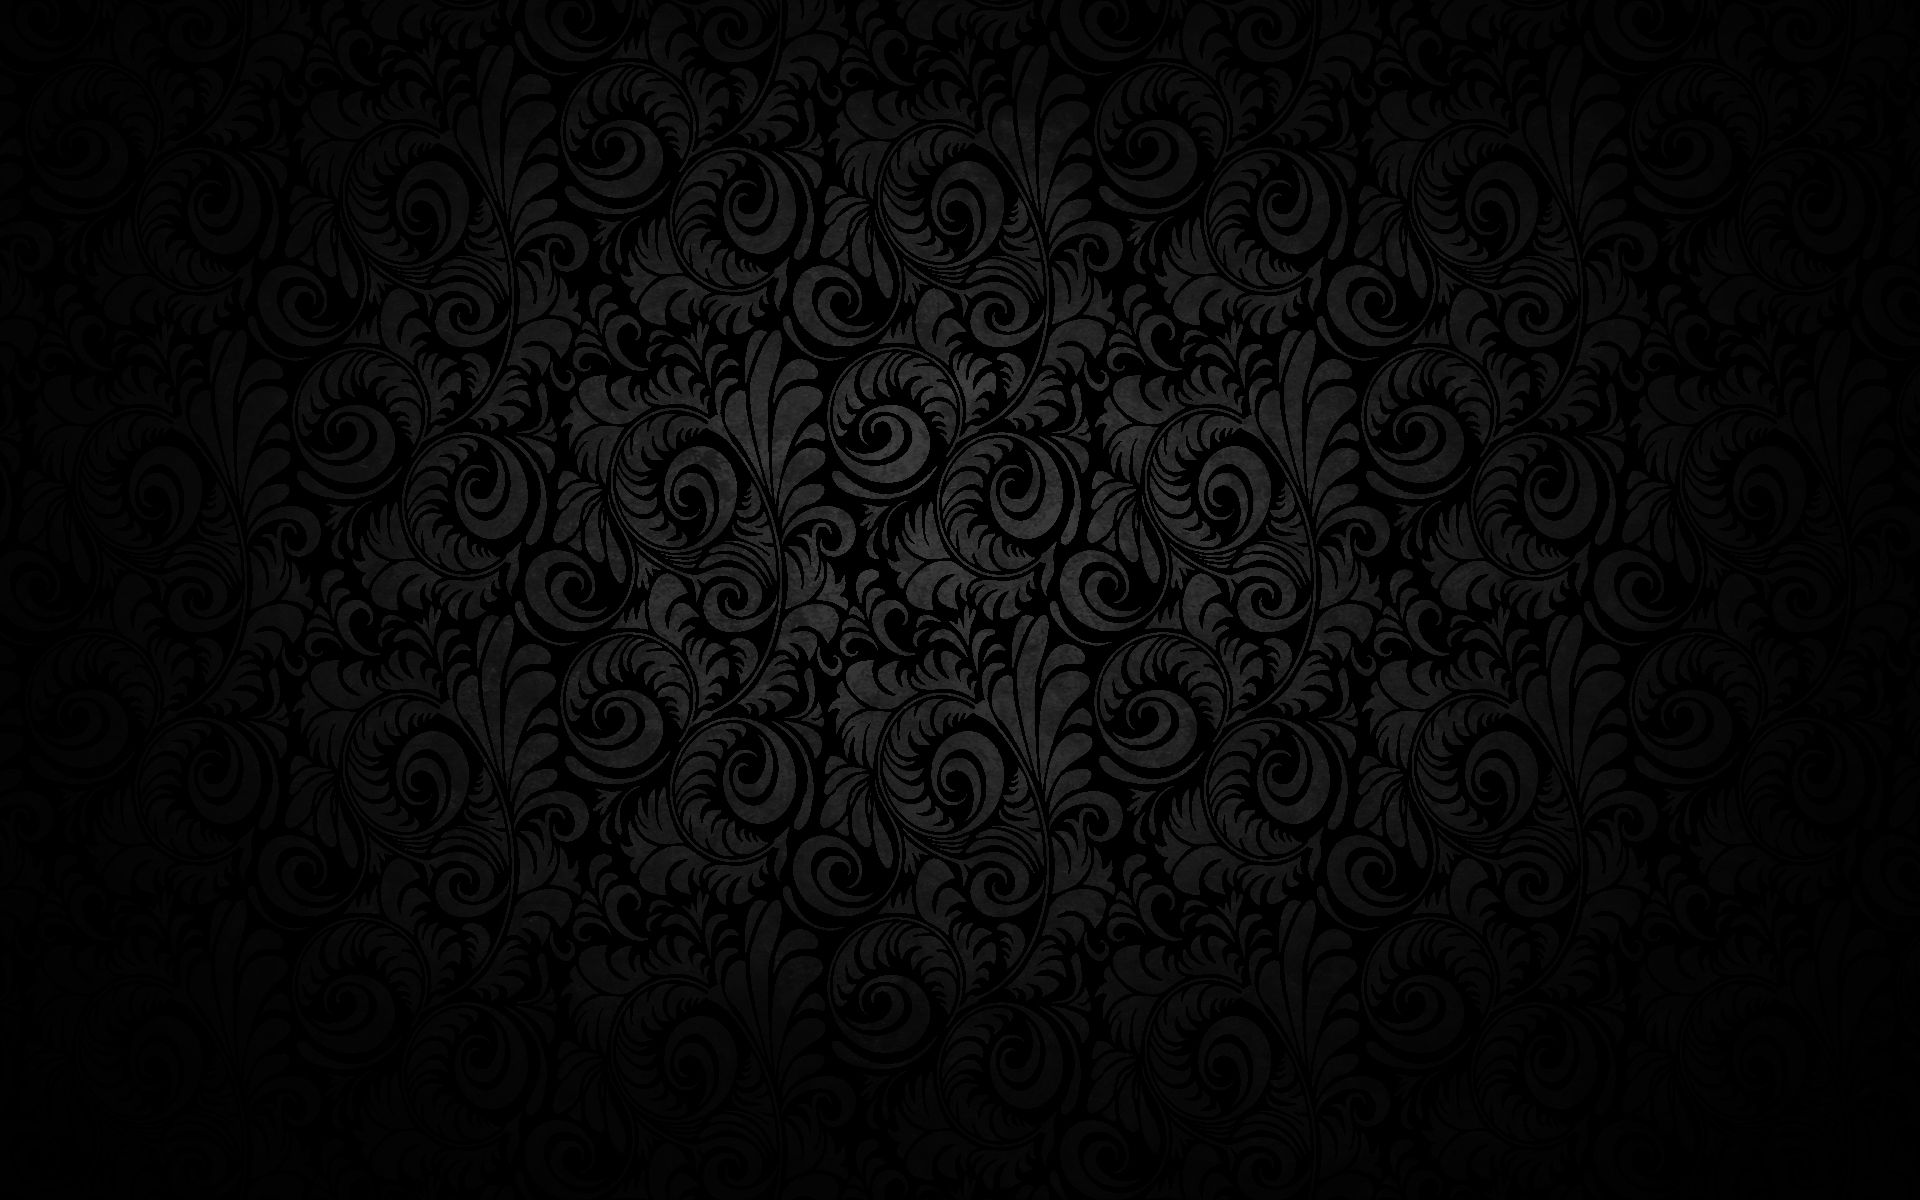 Black Floral Texture Pattern Design Wallpaper 1920x1200